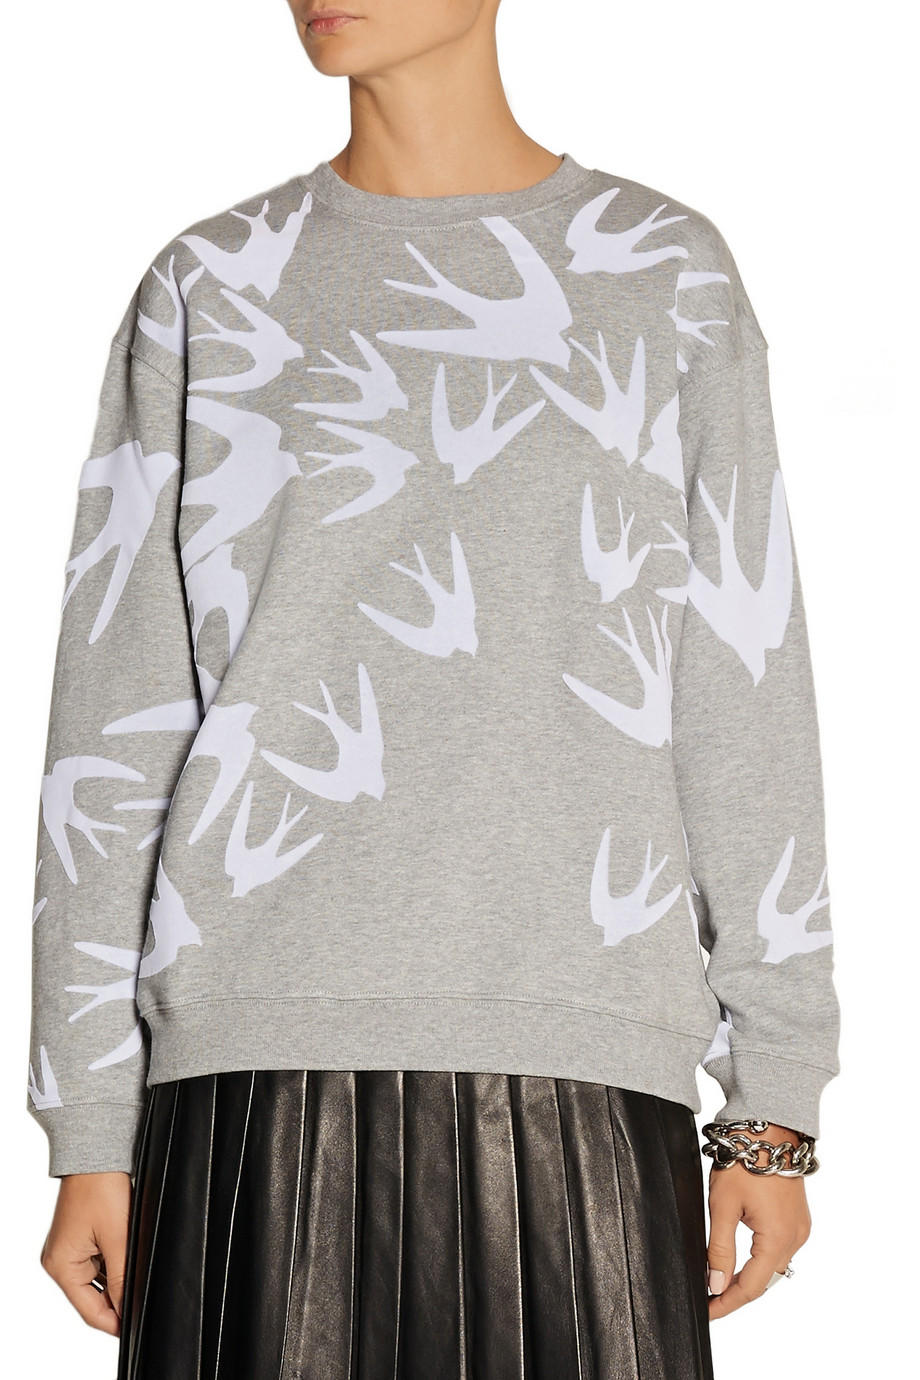 MCQ ALEXANDER MCQUEEN Flocked cotton sweatshirt @ The Outnet